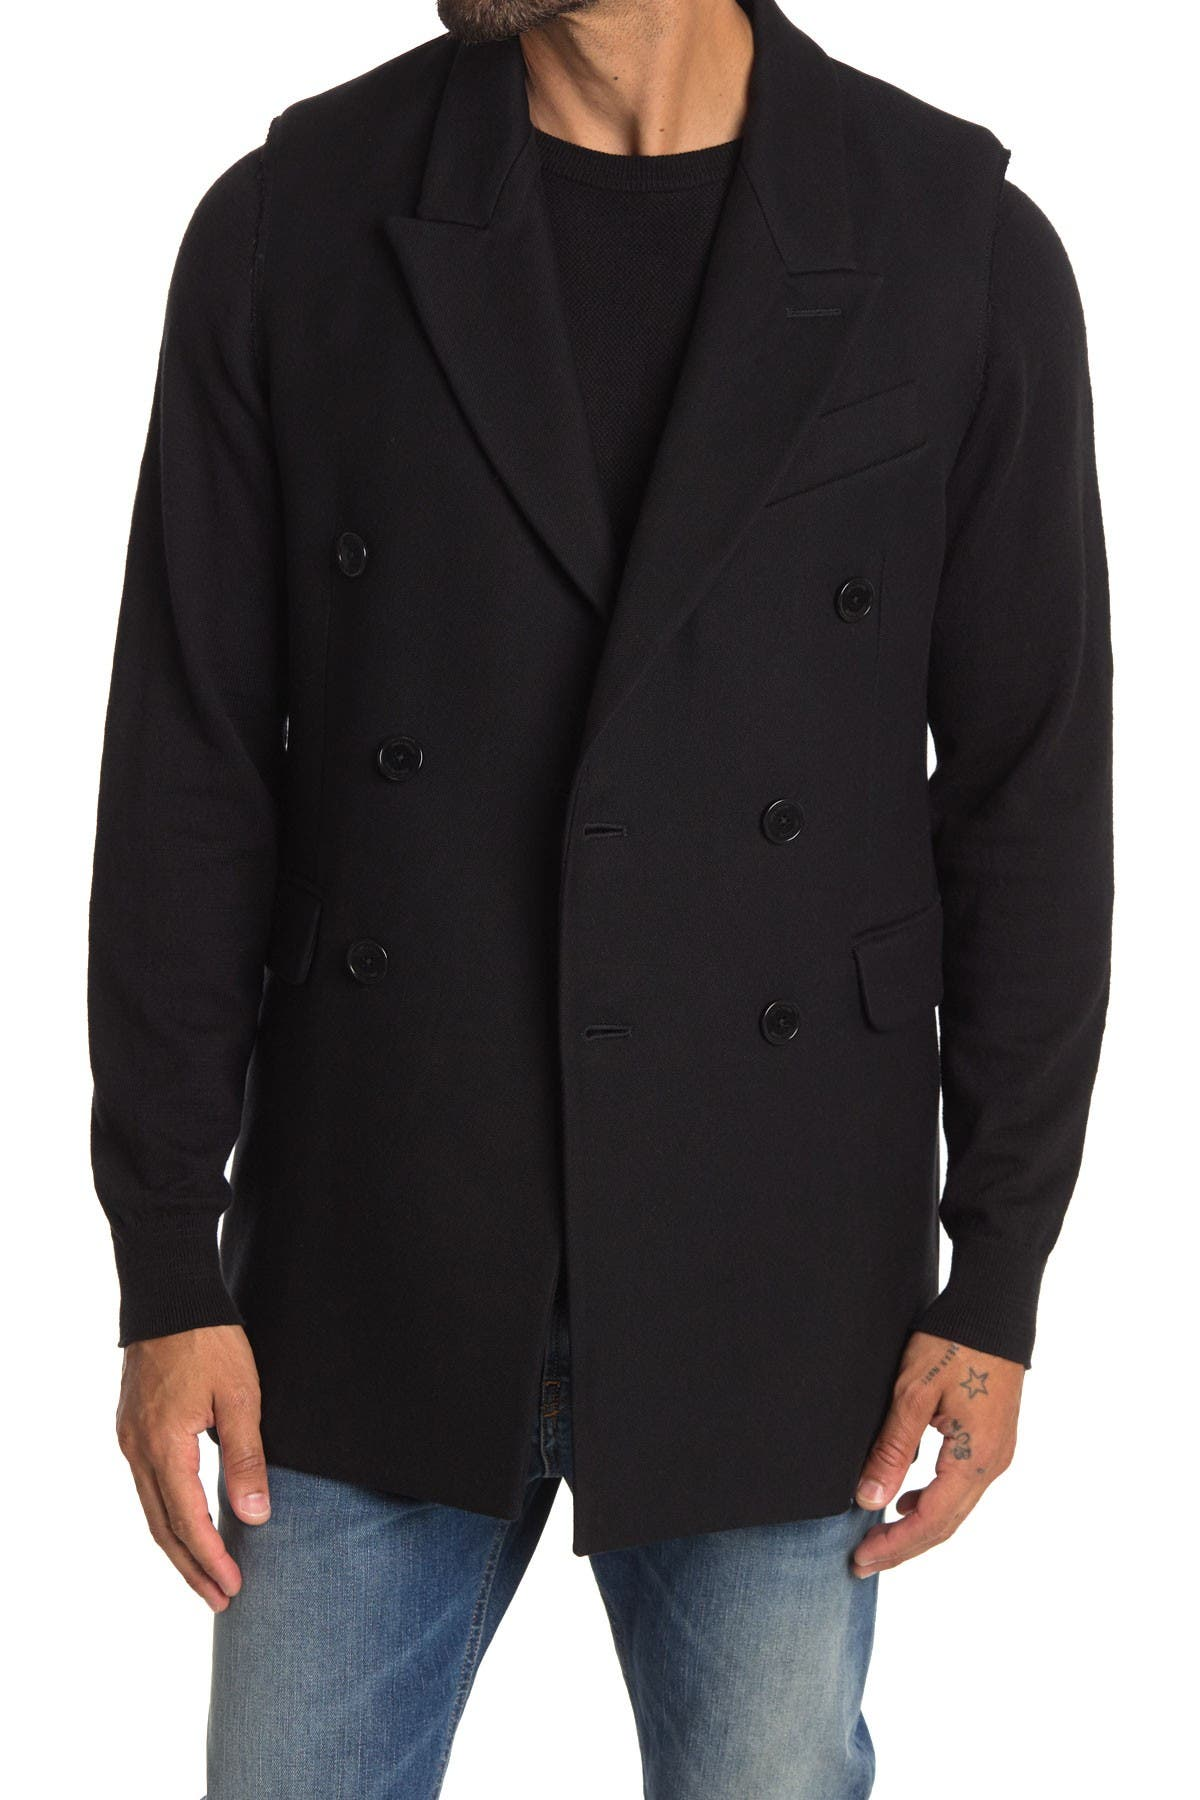 Image of Zadig & Voltaire Vinam Wool Blend Double Breasted Jacket